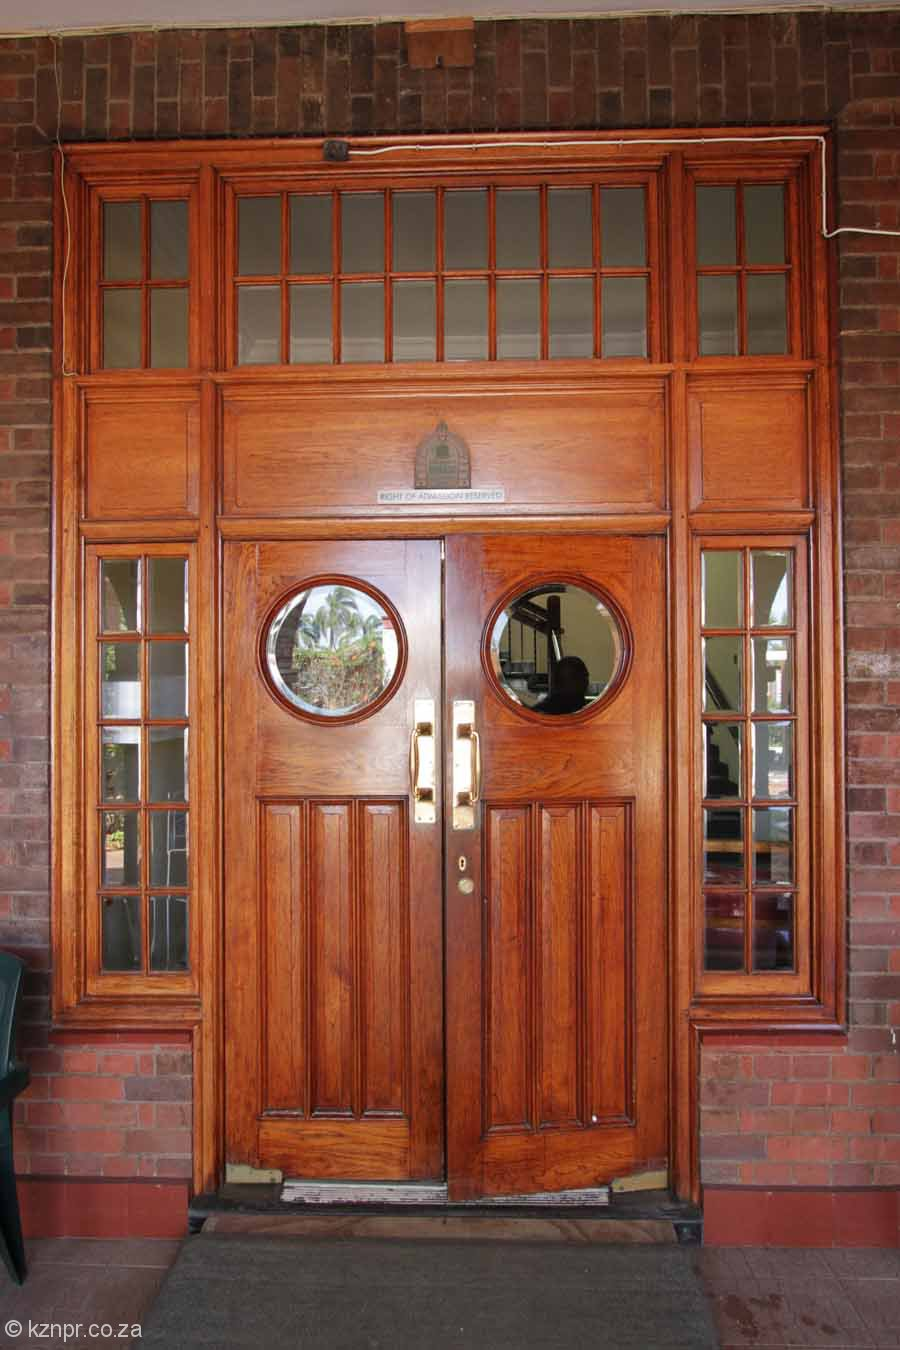 Bartle House 1929 - Durban Home for Men - 300 Bartle Road - Main entrance door & Durban Area | KZN: A Photographic and Historical Record Pezcame.Com